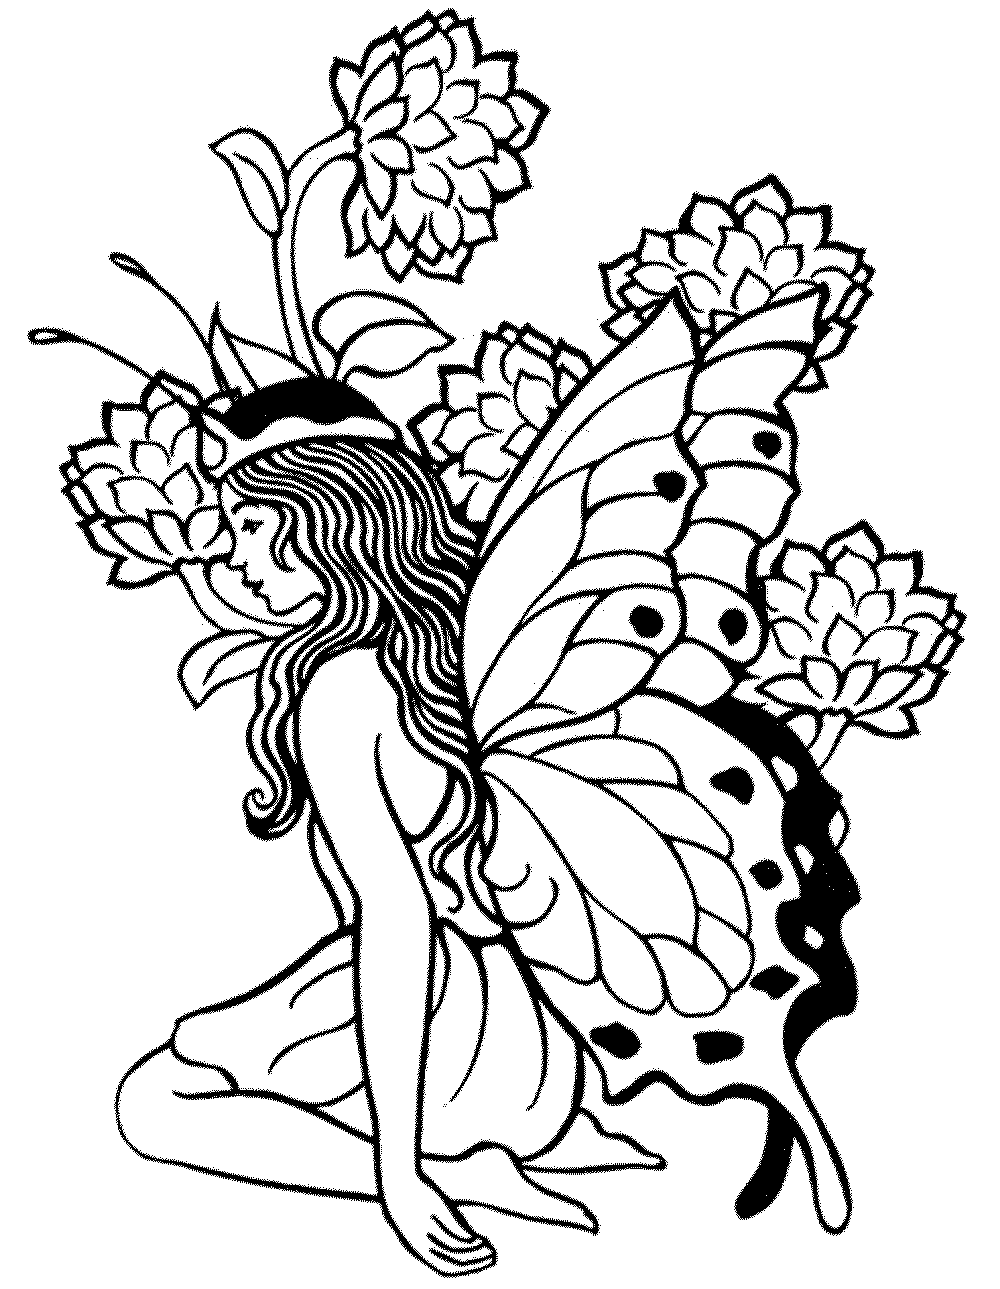 Printable Fairy Coloring Pages For Adults - Coloring Home | free printable coloring pages for adults funny